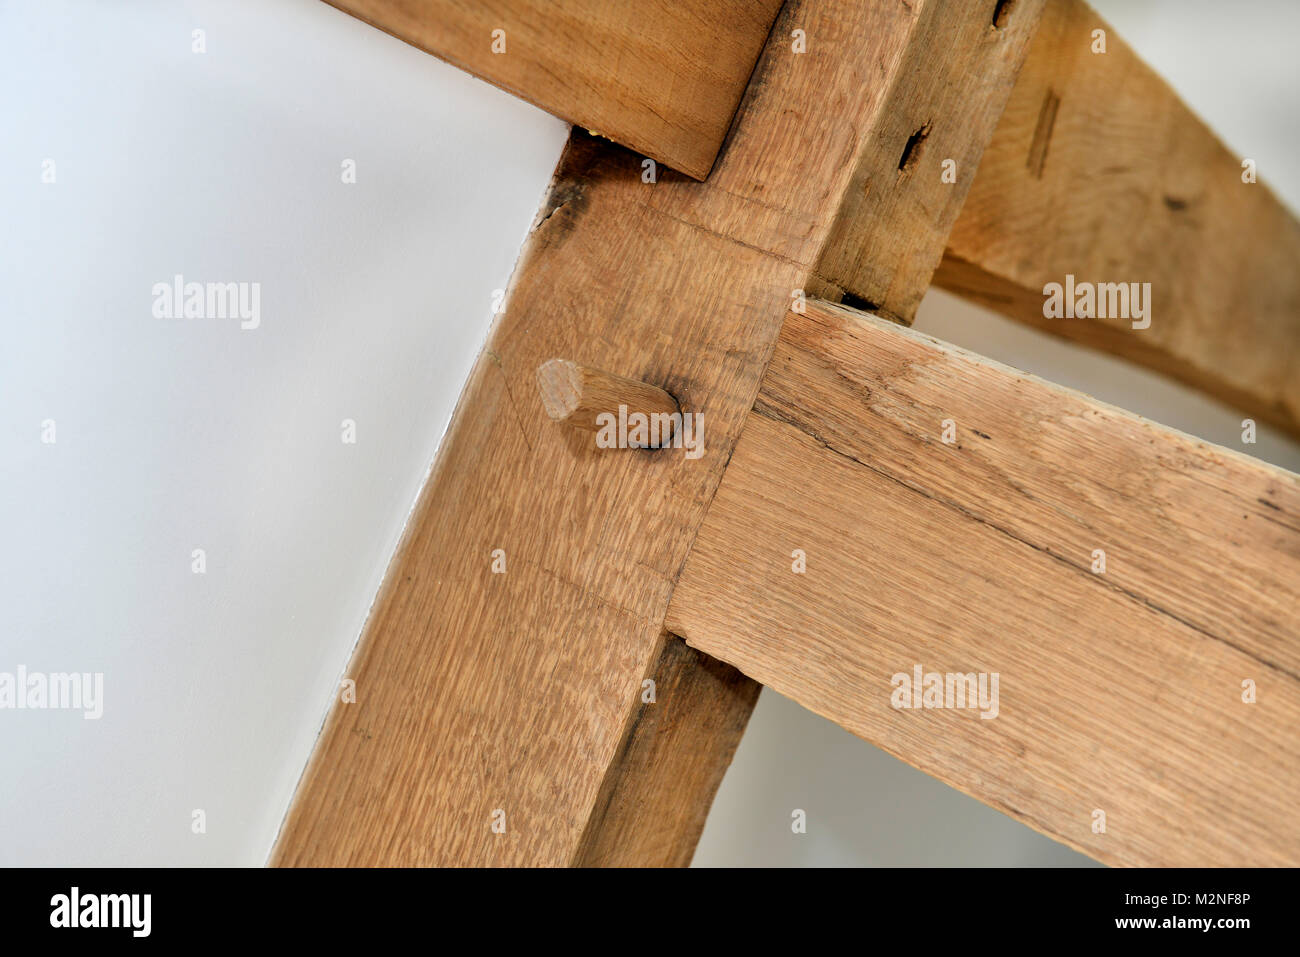 a detail of a wooden pin joint in building rafter - Stock Image